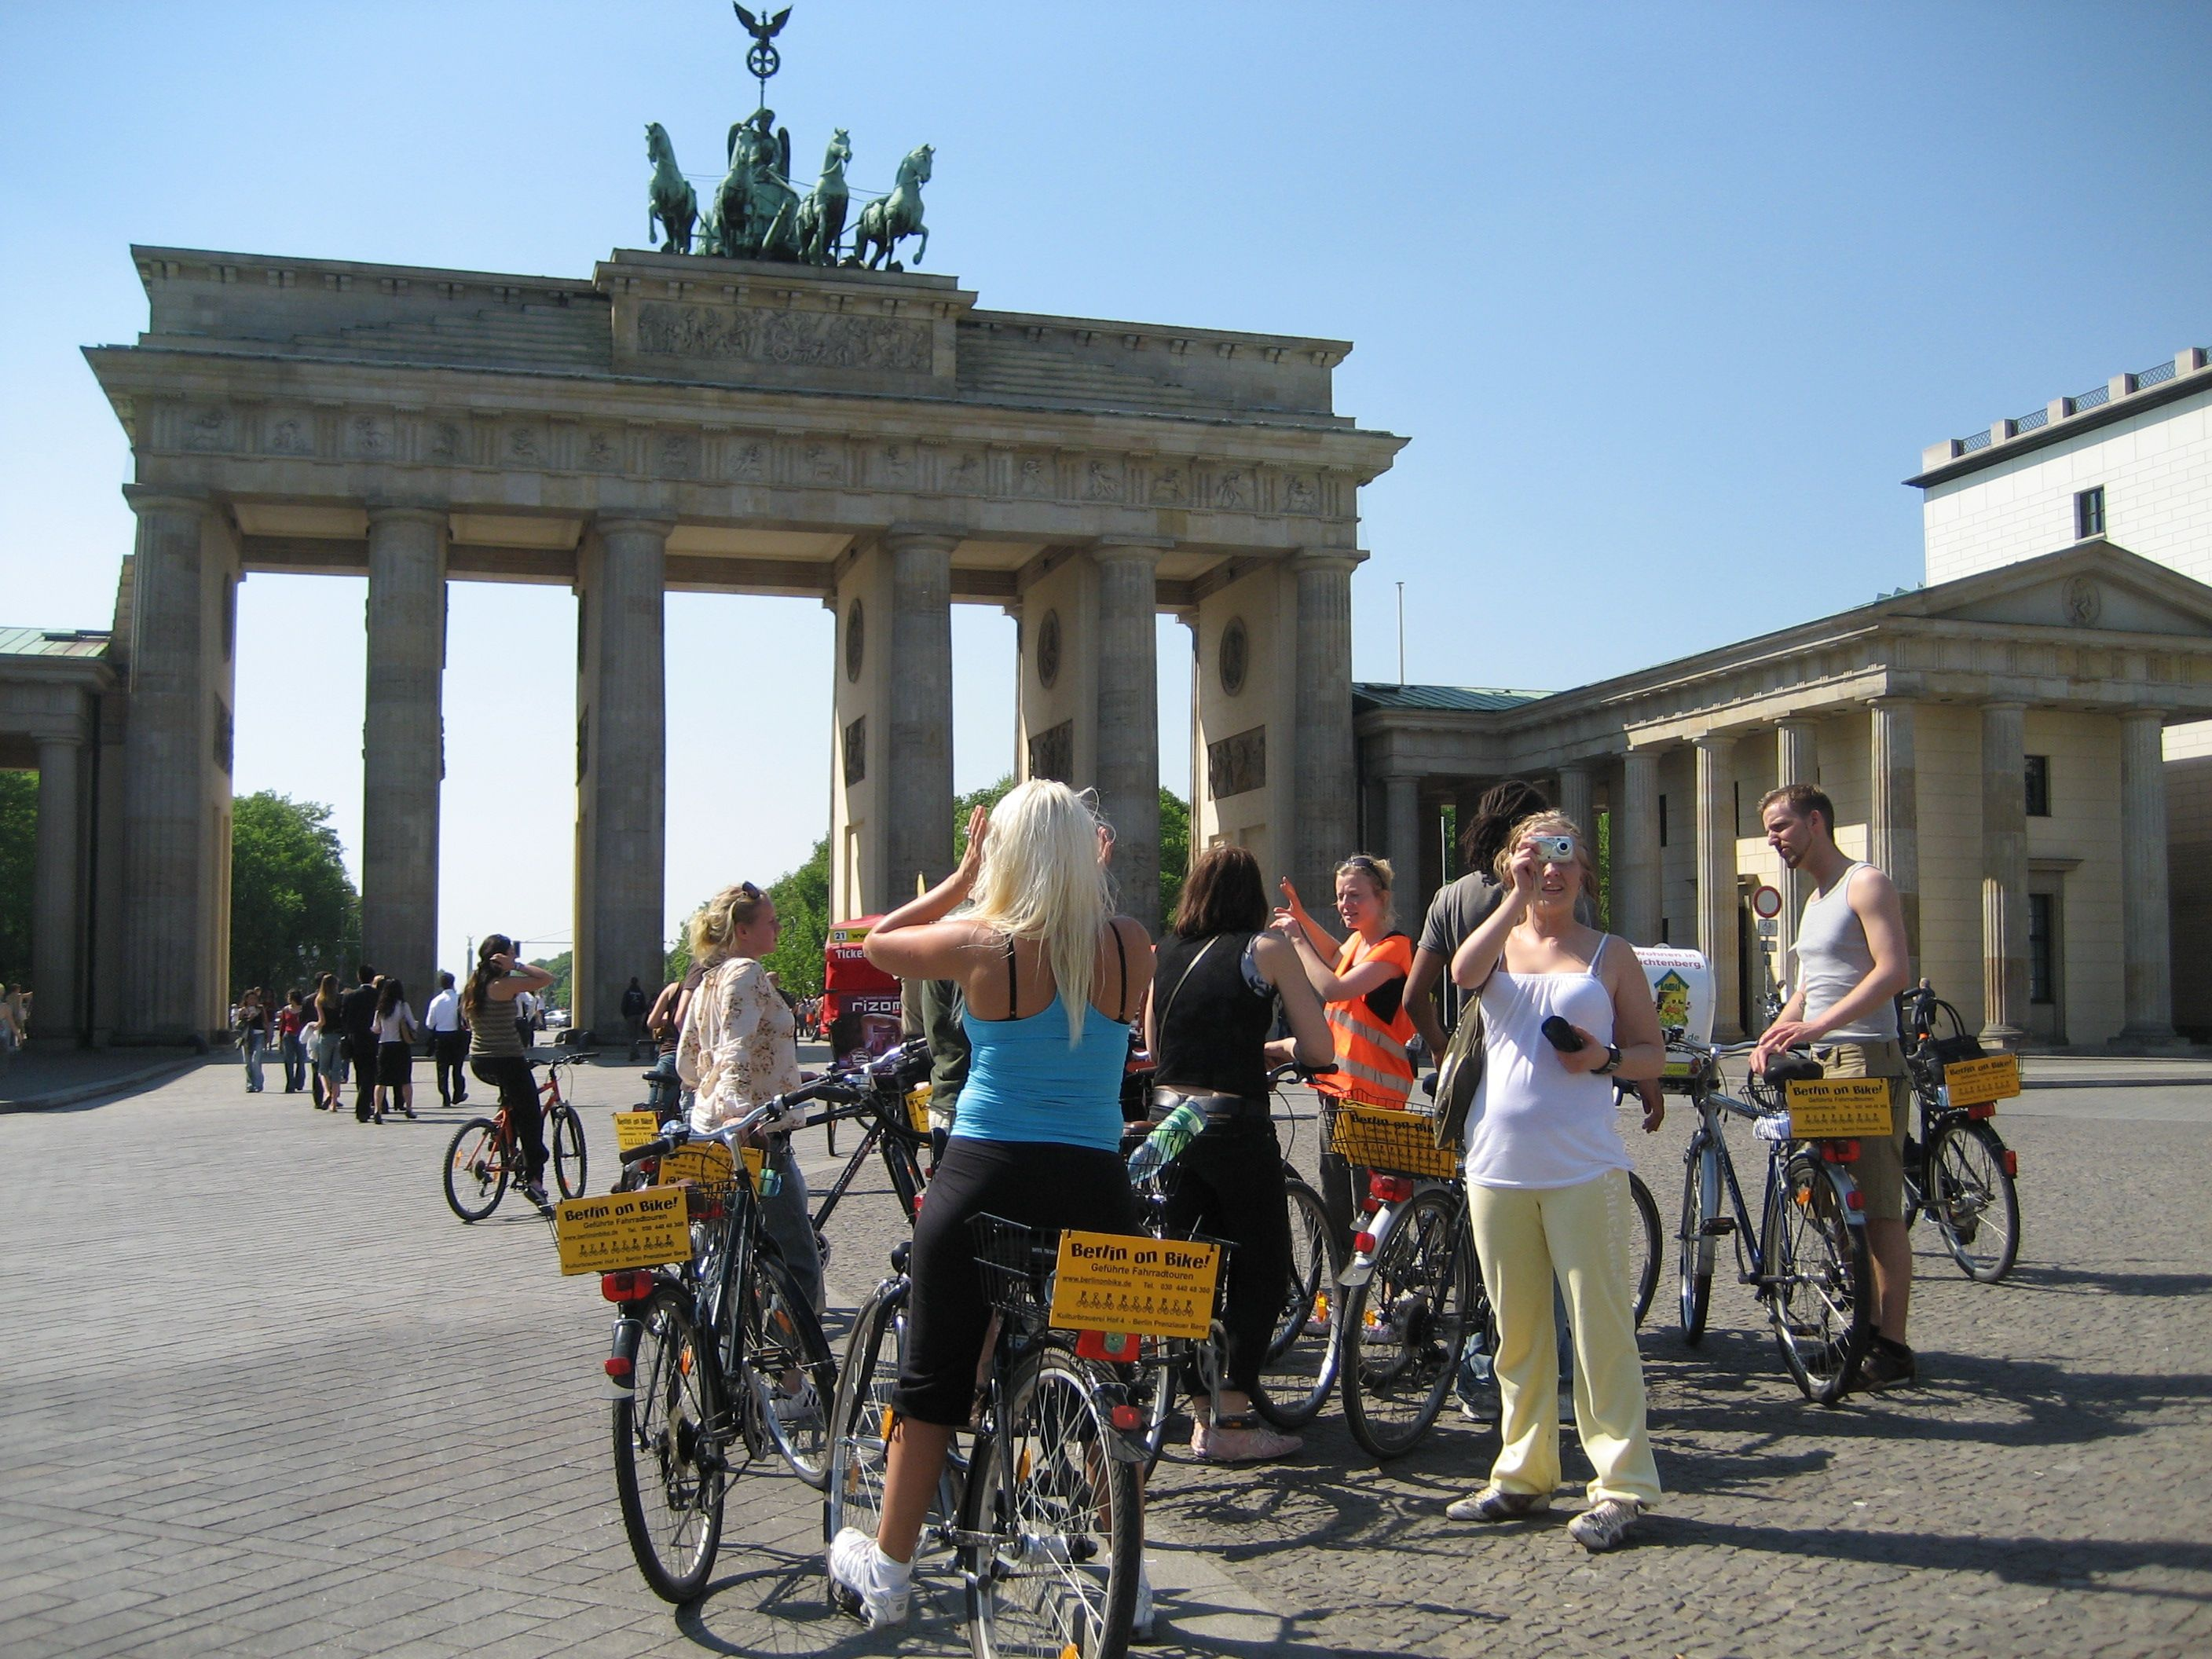 Berlin - Berlin is a perfect city to discover by bike. Check out our tours at www.bajabikes.eu/nl/fietsen-in-berlijn